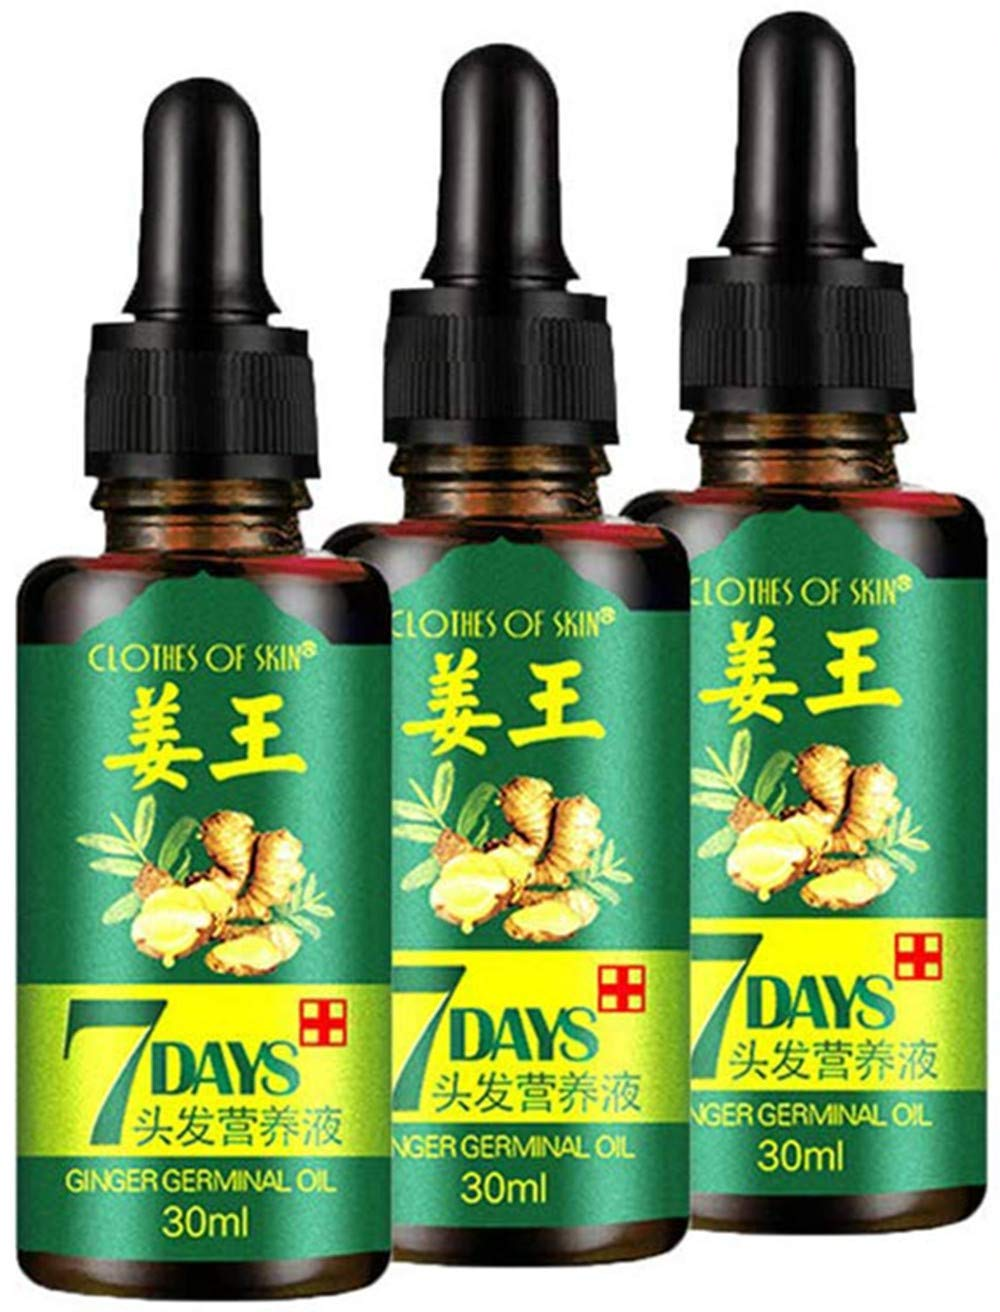 7 Days Hair Growth Serum